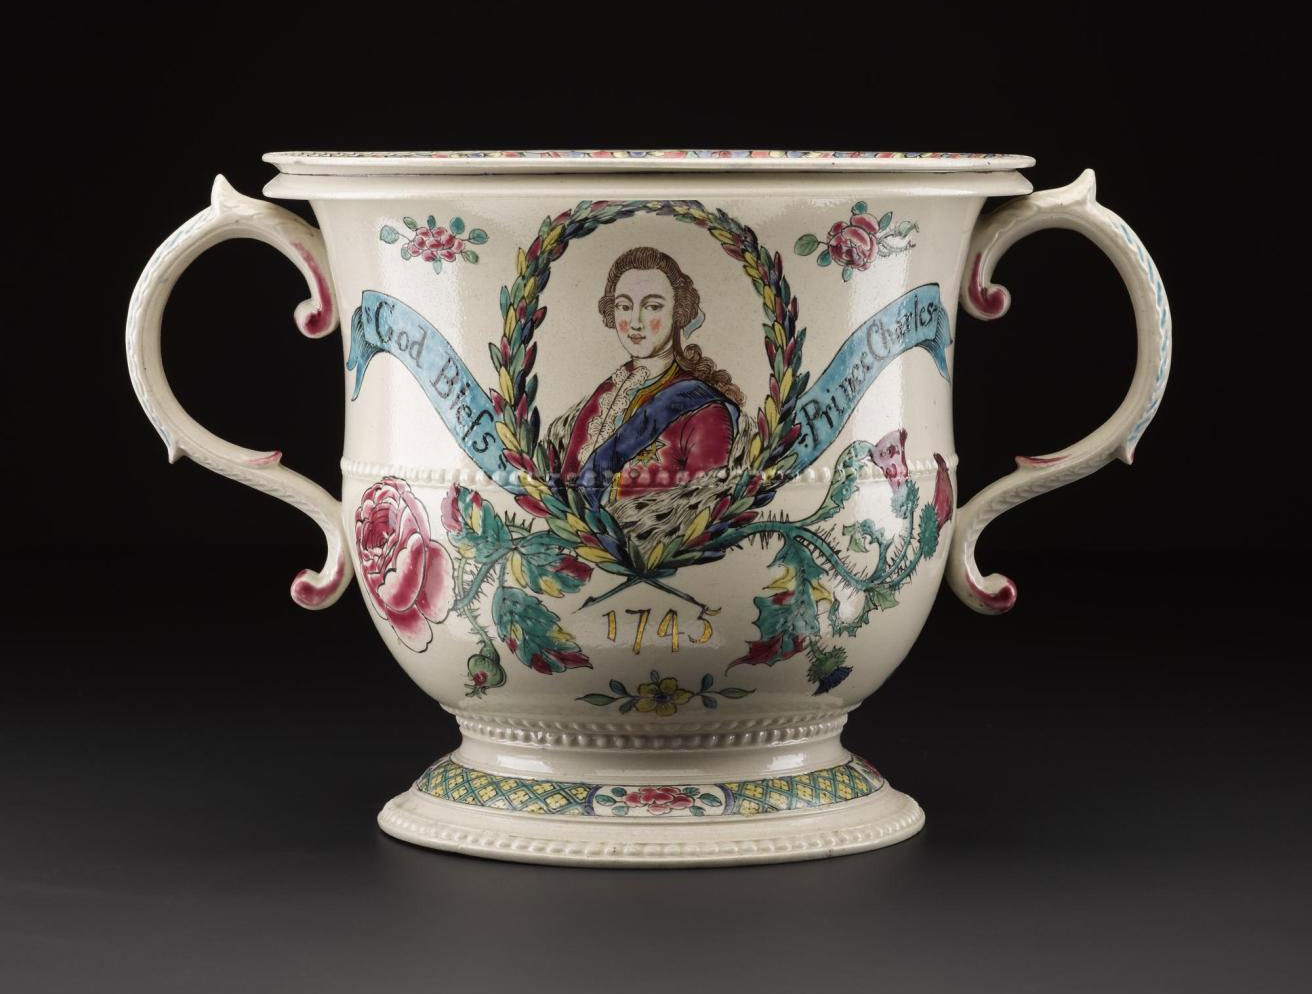 Staffordshire pottery flower vase with a portrait of Prince Charles Edward Stuart and the date 1745: English, Staffordshire, made c.1765, 20 years after Culloden.